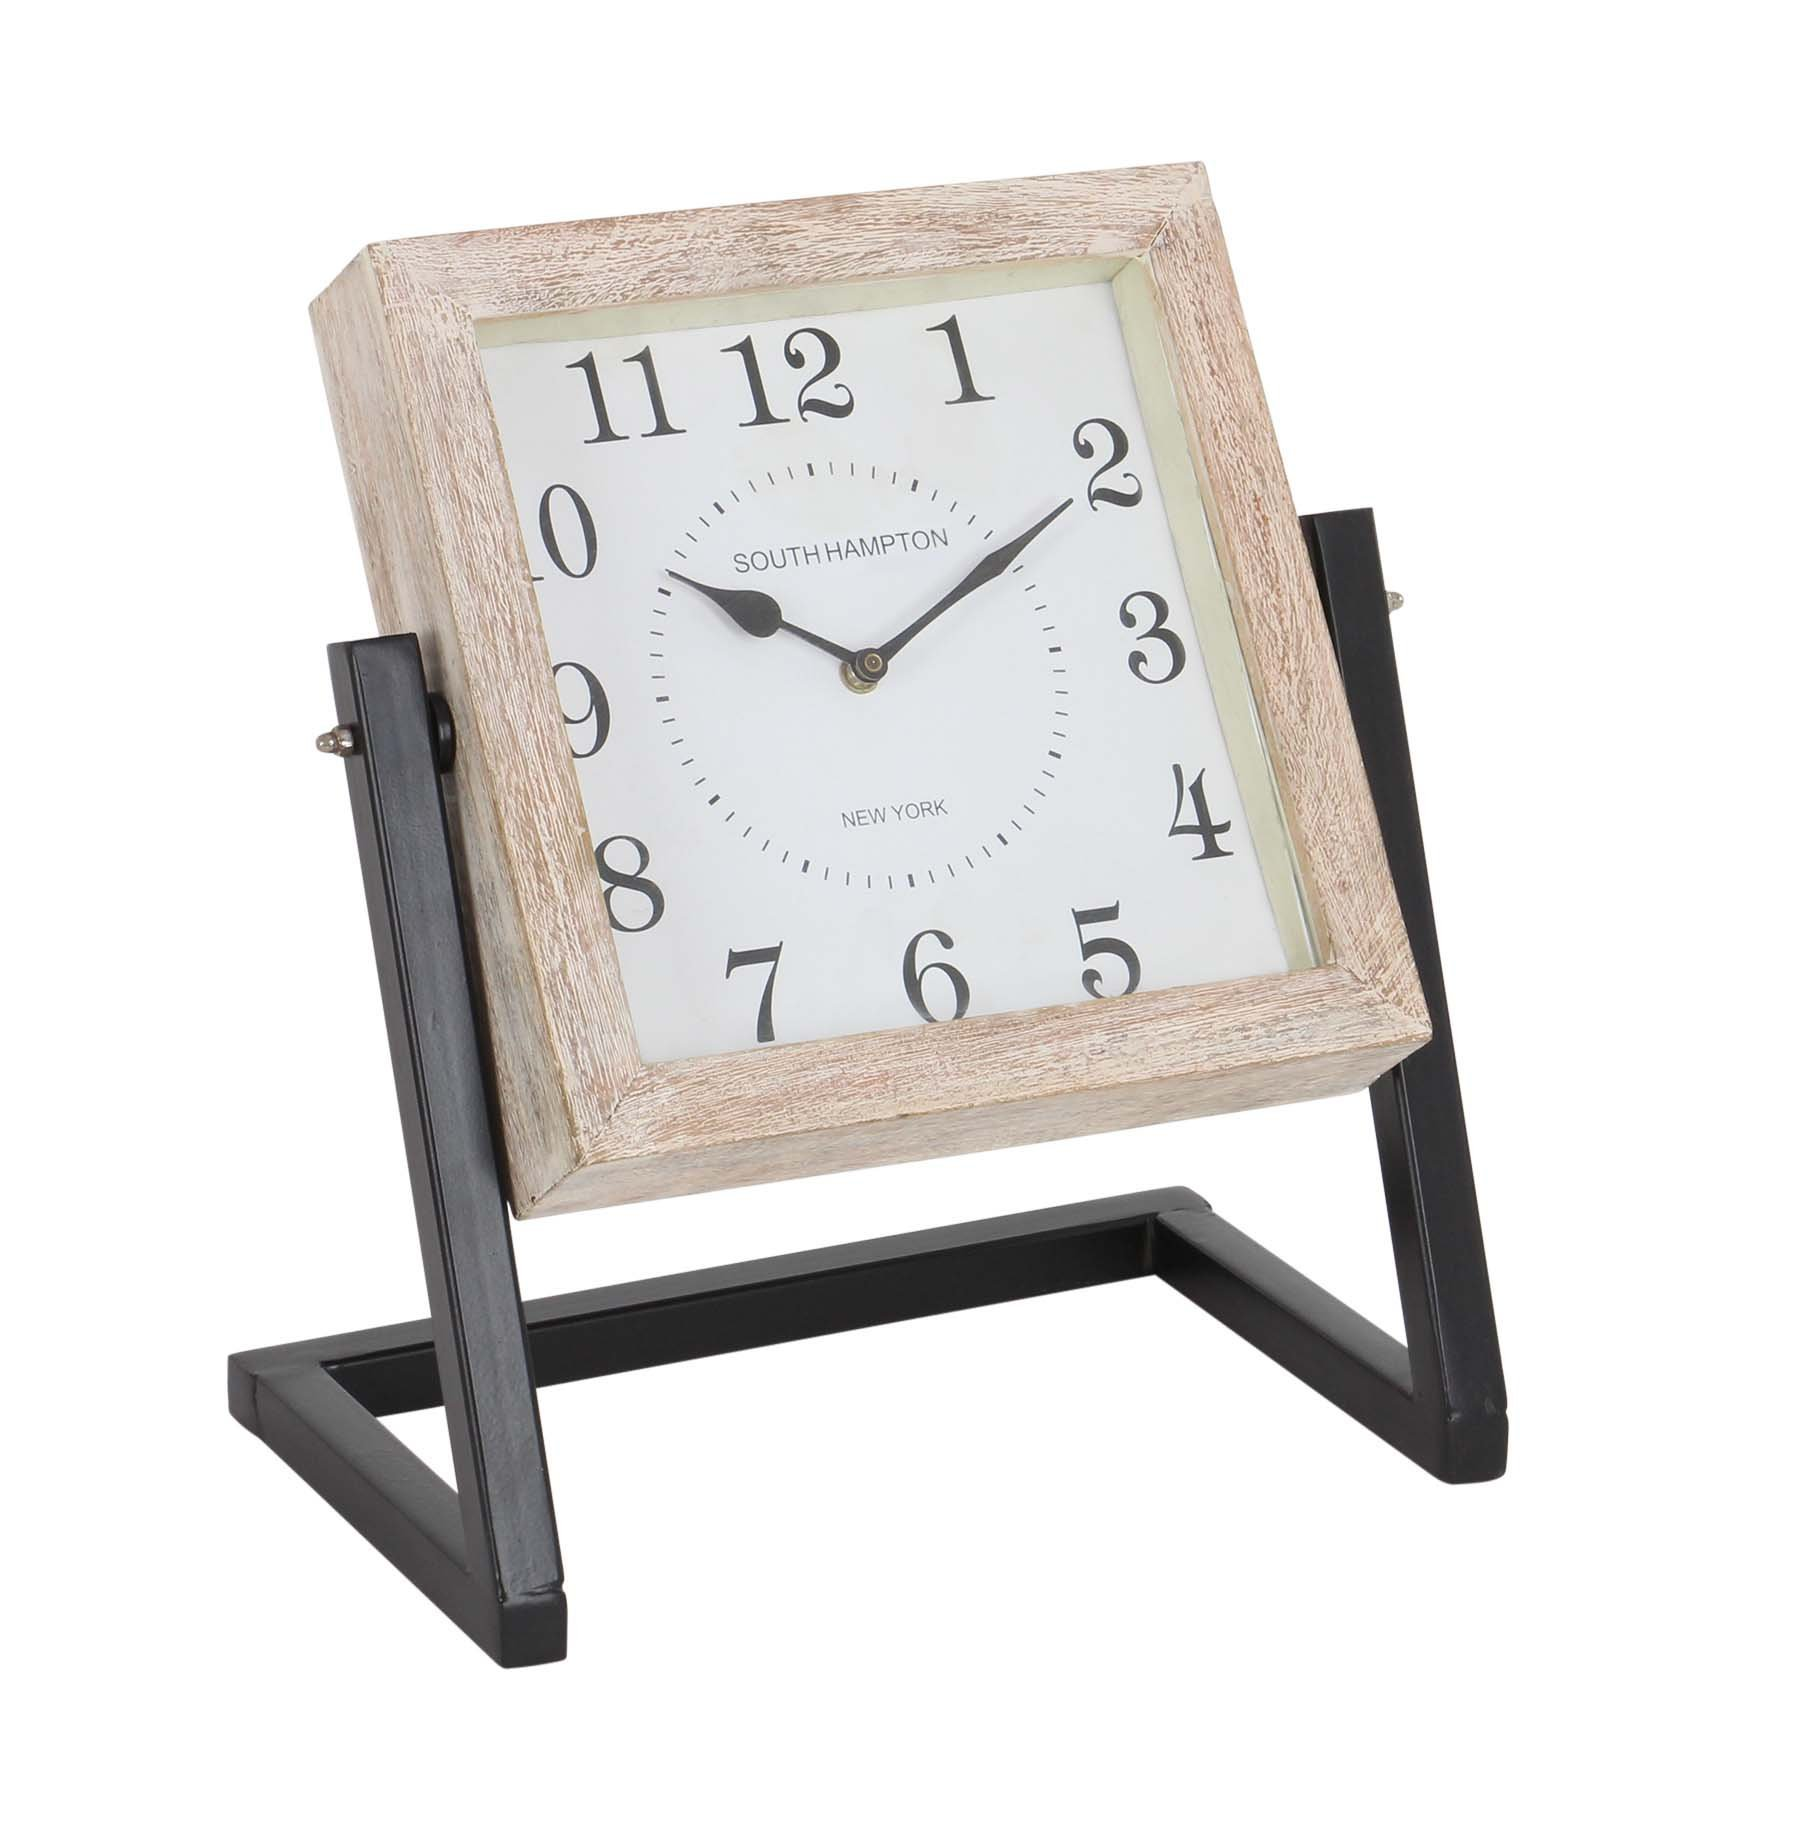 Deco 79 42194 Iron and Mango Wood Swinging Table Clock, 14'' x 12'', Brown/Gray/Black/White by Deco 79 (Image #1)